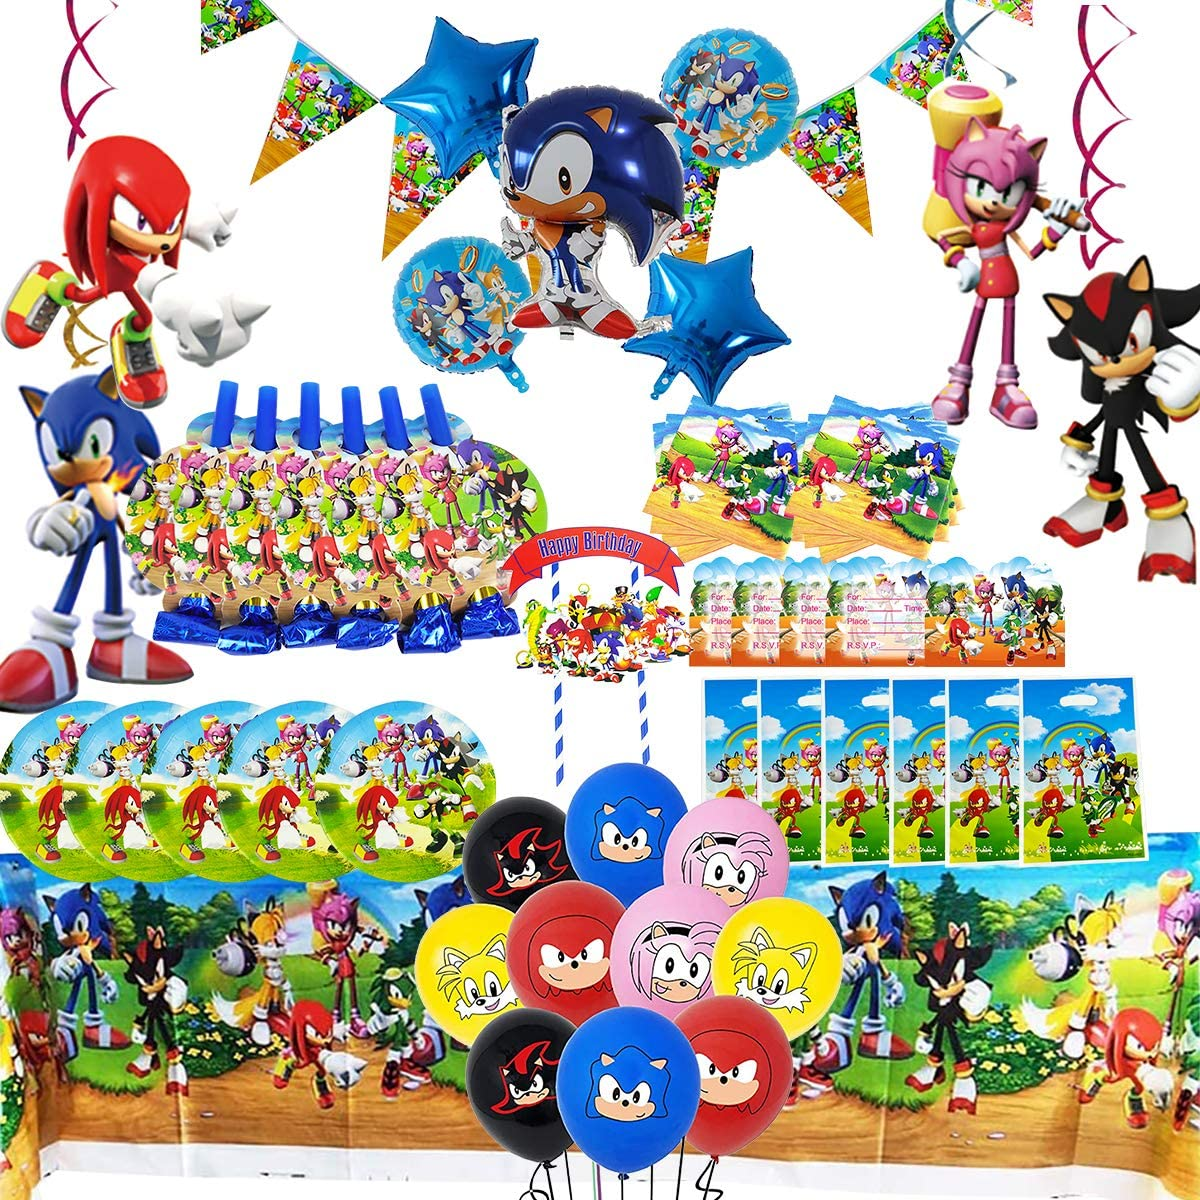 TOXYU 95Pcs Sonic Party Supplies for Boys Girls Baby Birthday Decorations Includes Table Cloth, Cake Topper, Gift Bags, Dinner plate, Invitation Card, Sonic Cake toppers and sonic Foil Balloons, Disposable Tableware Kits